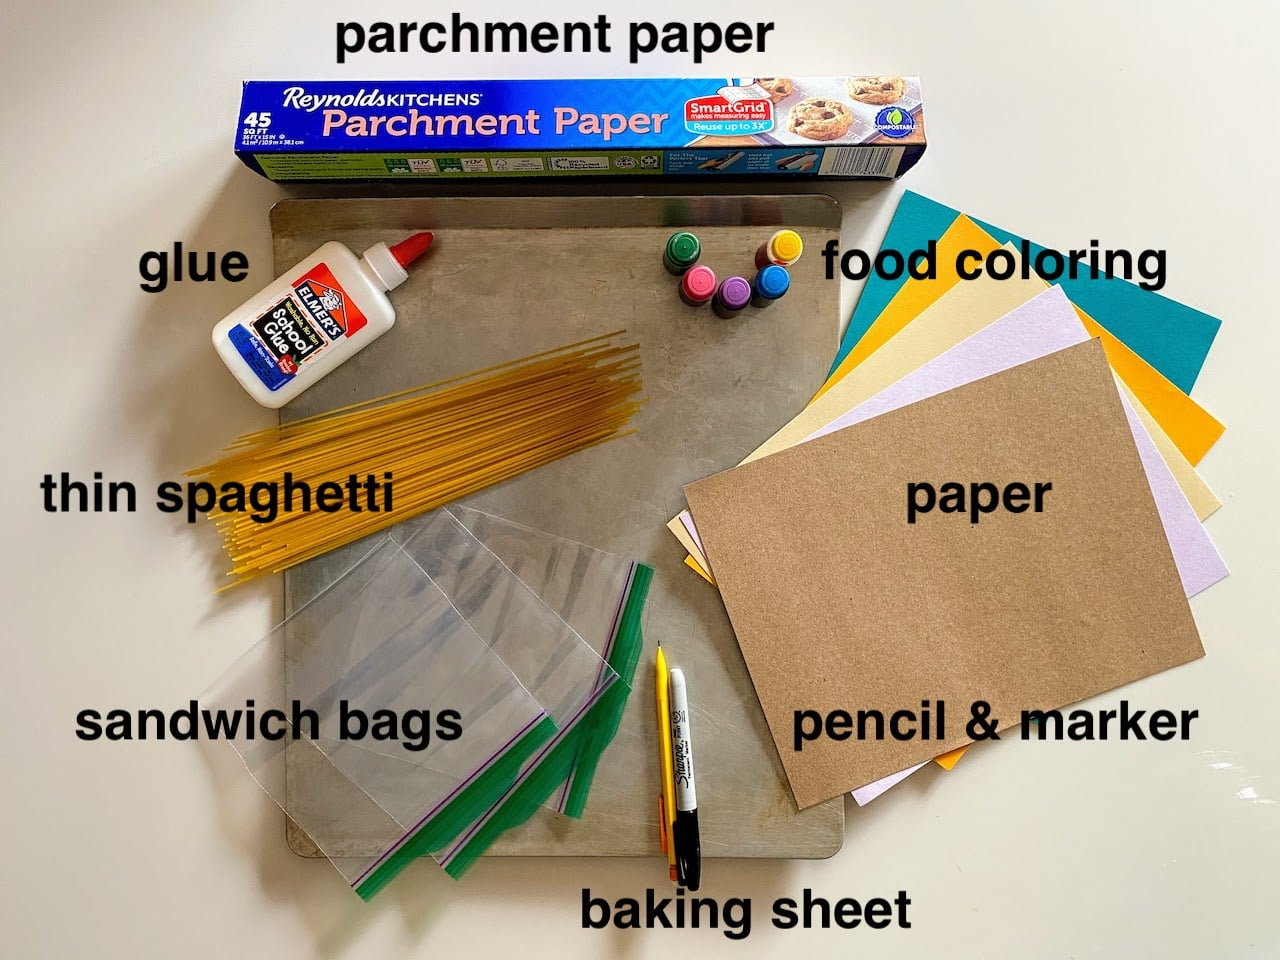 craft supplies for colorful kids art project using dry spaghetti noodles